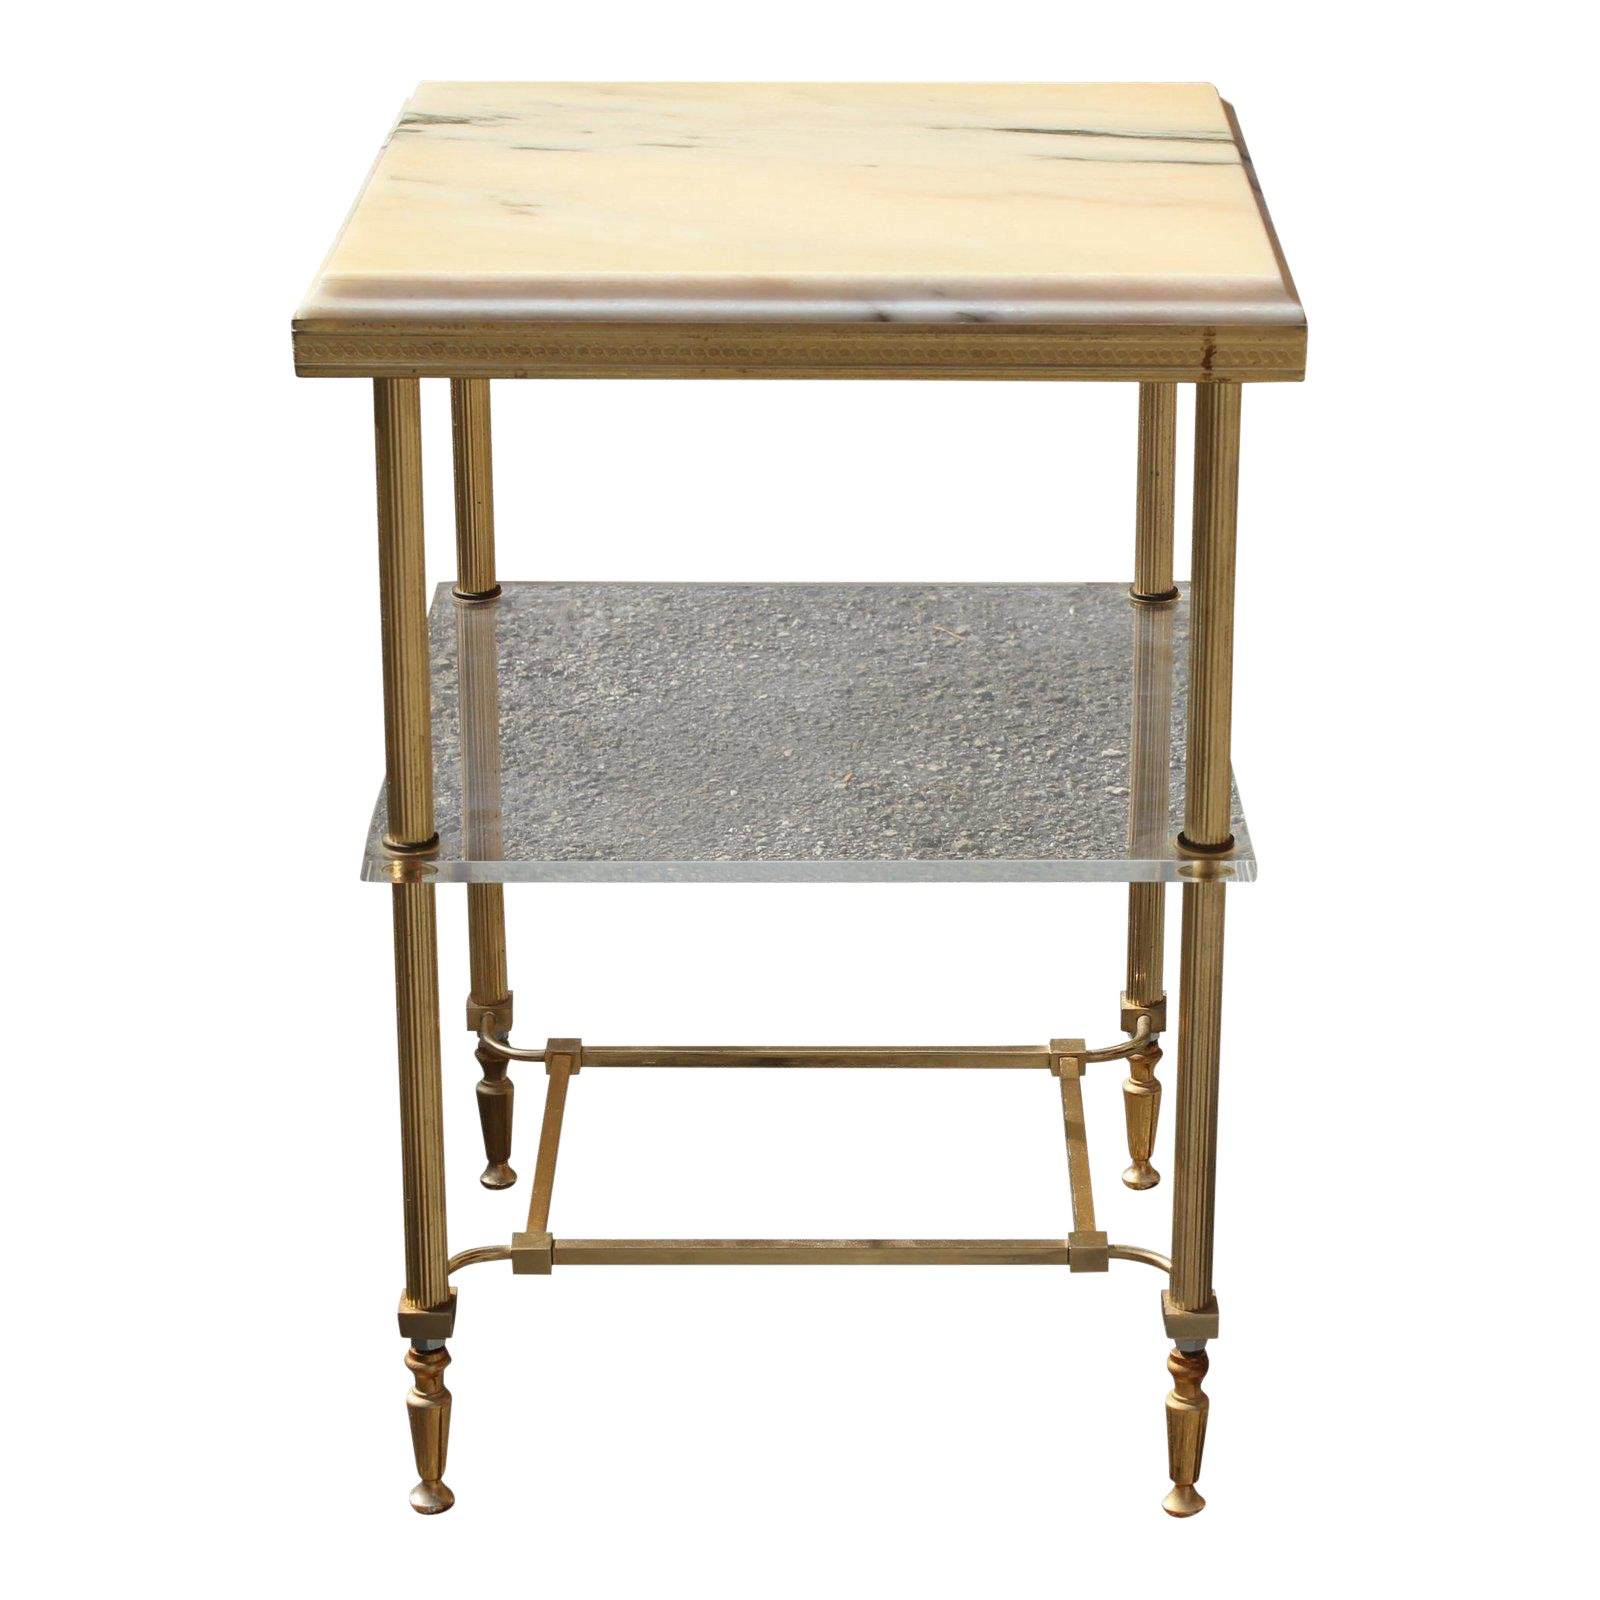 Sophisticated 1940s Maison Jansen Art Deco Coffee Or Side Table